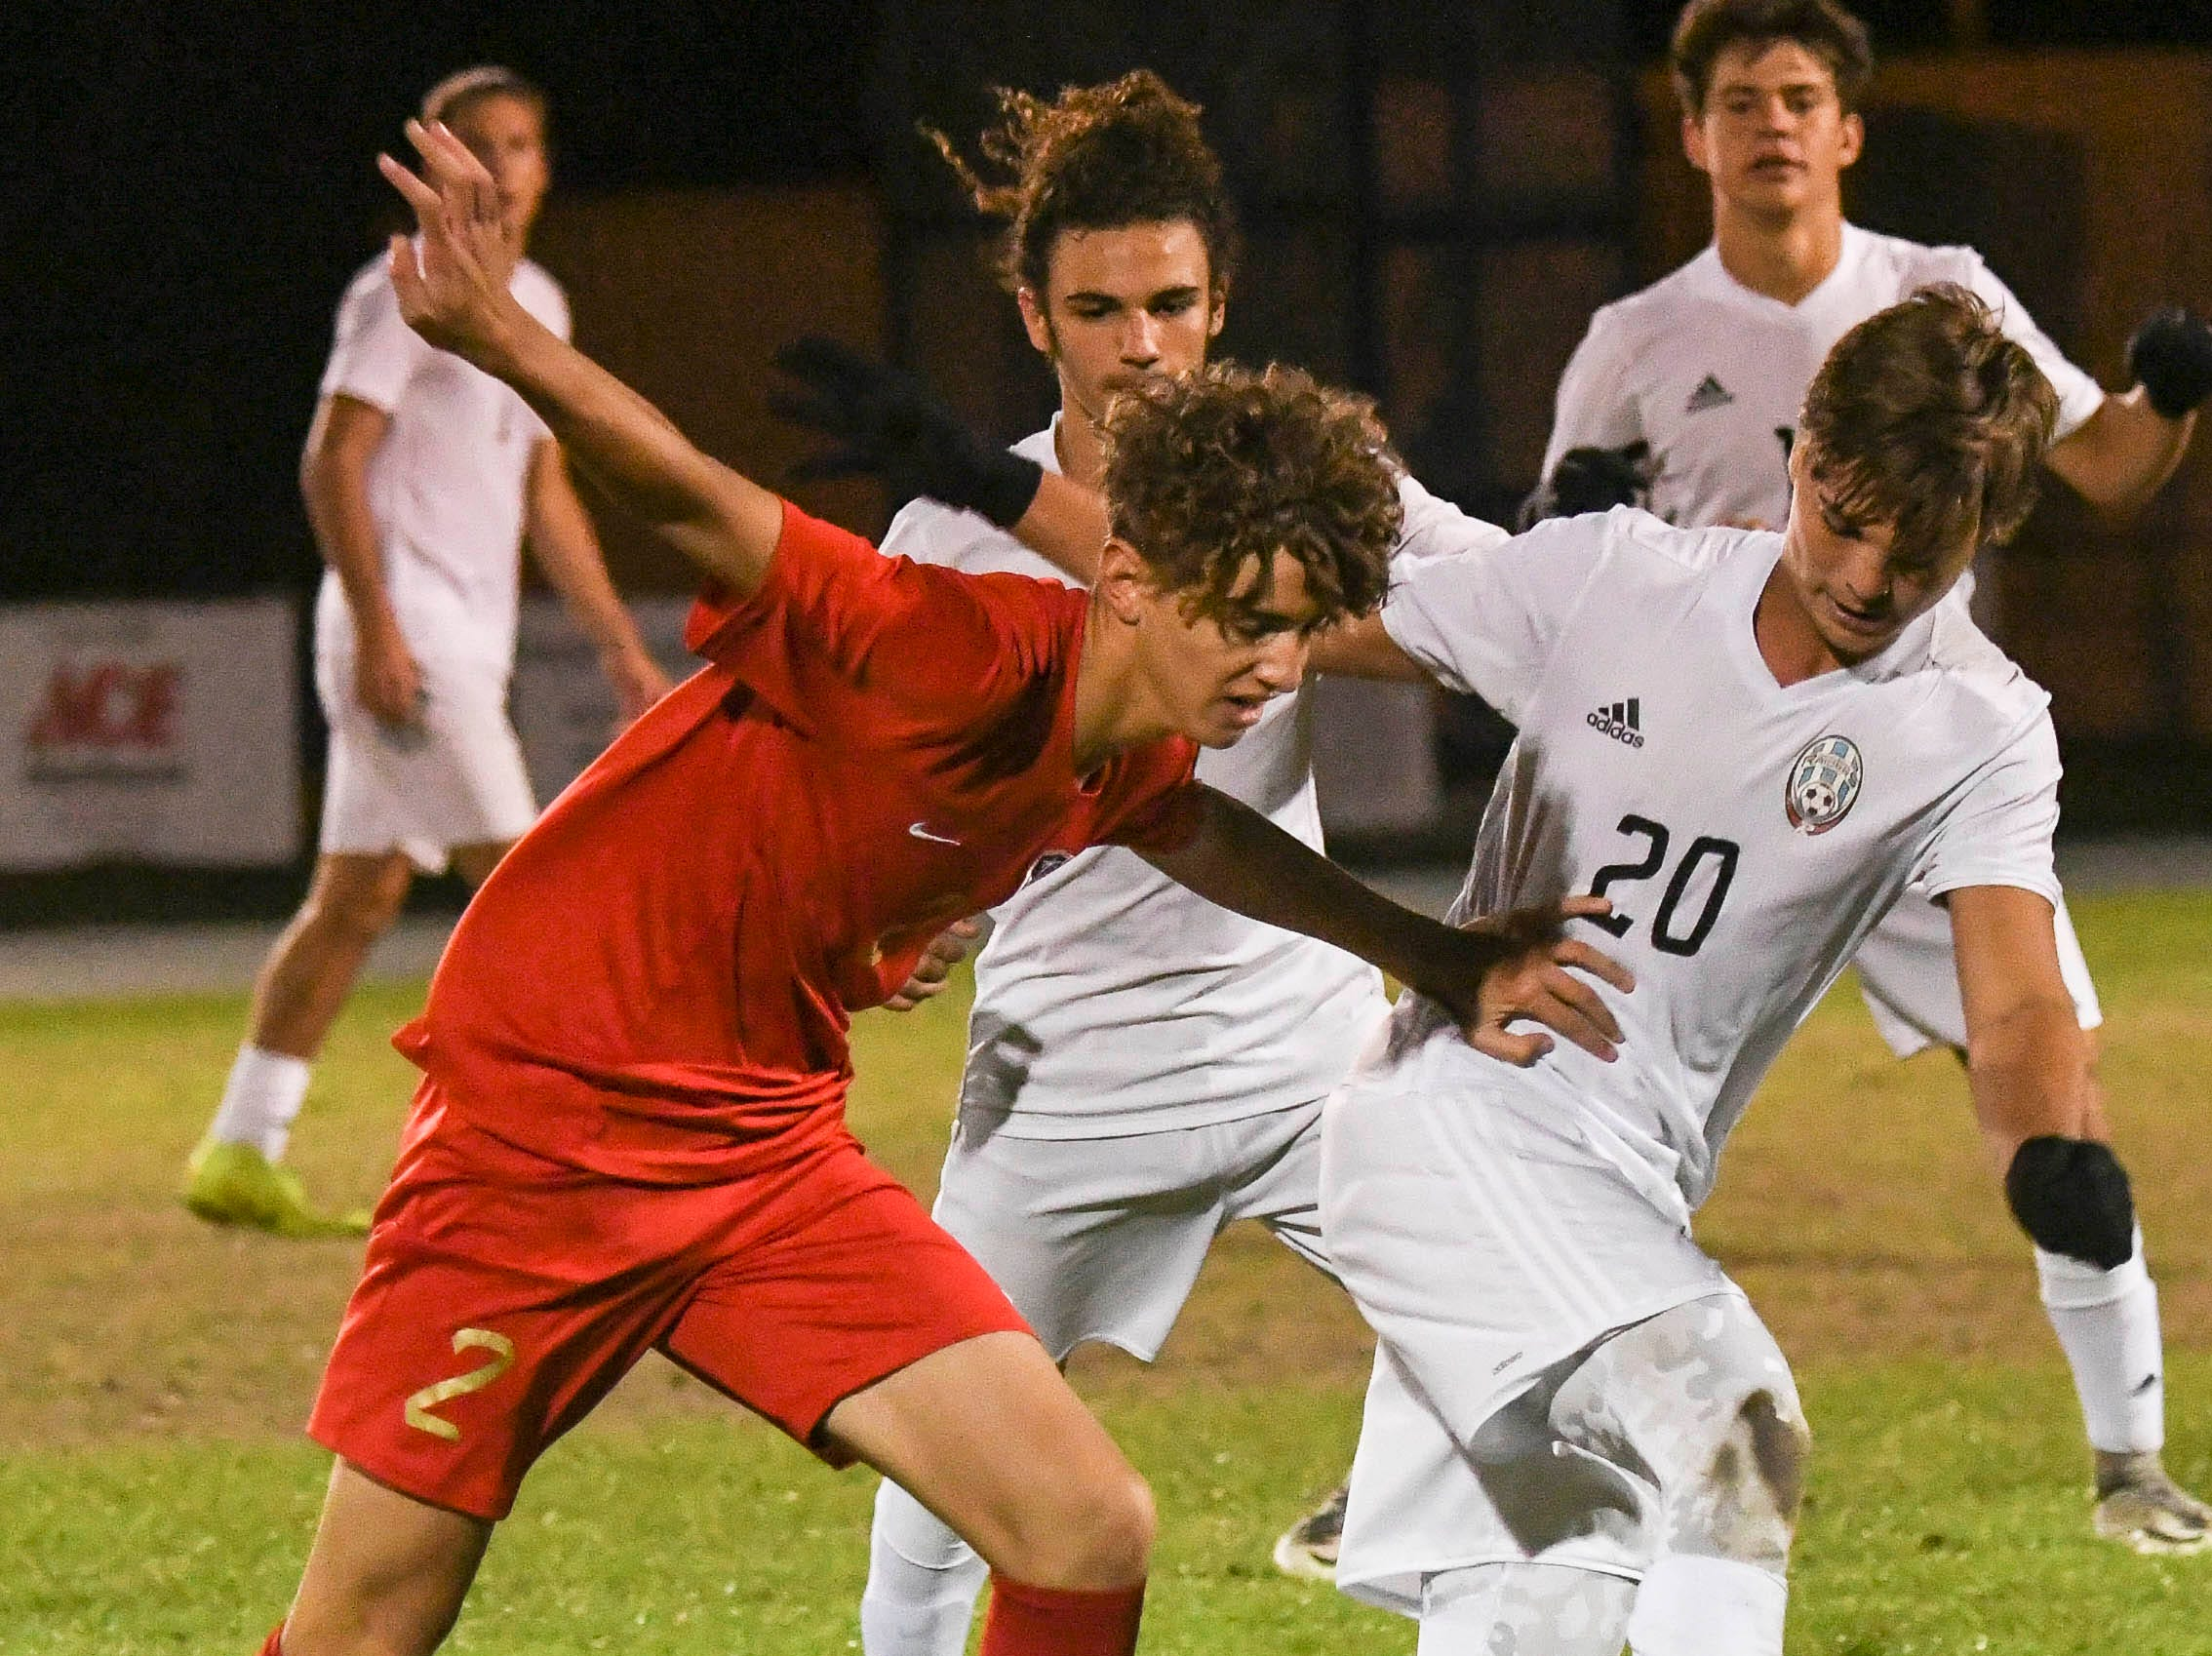 Alex Masedo of Eau Gallie and Taylor Williams of Rockledge fight for control of the ball during Thursday's game in Melbourne.